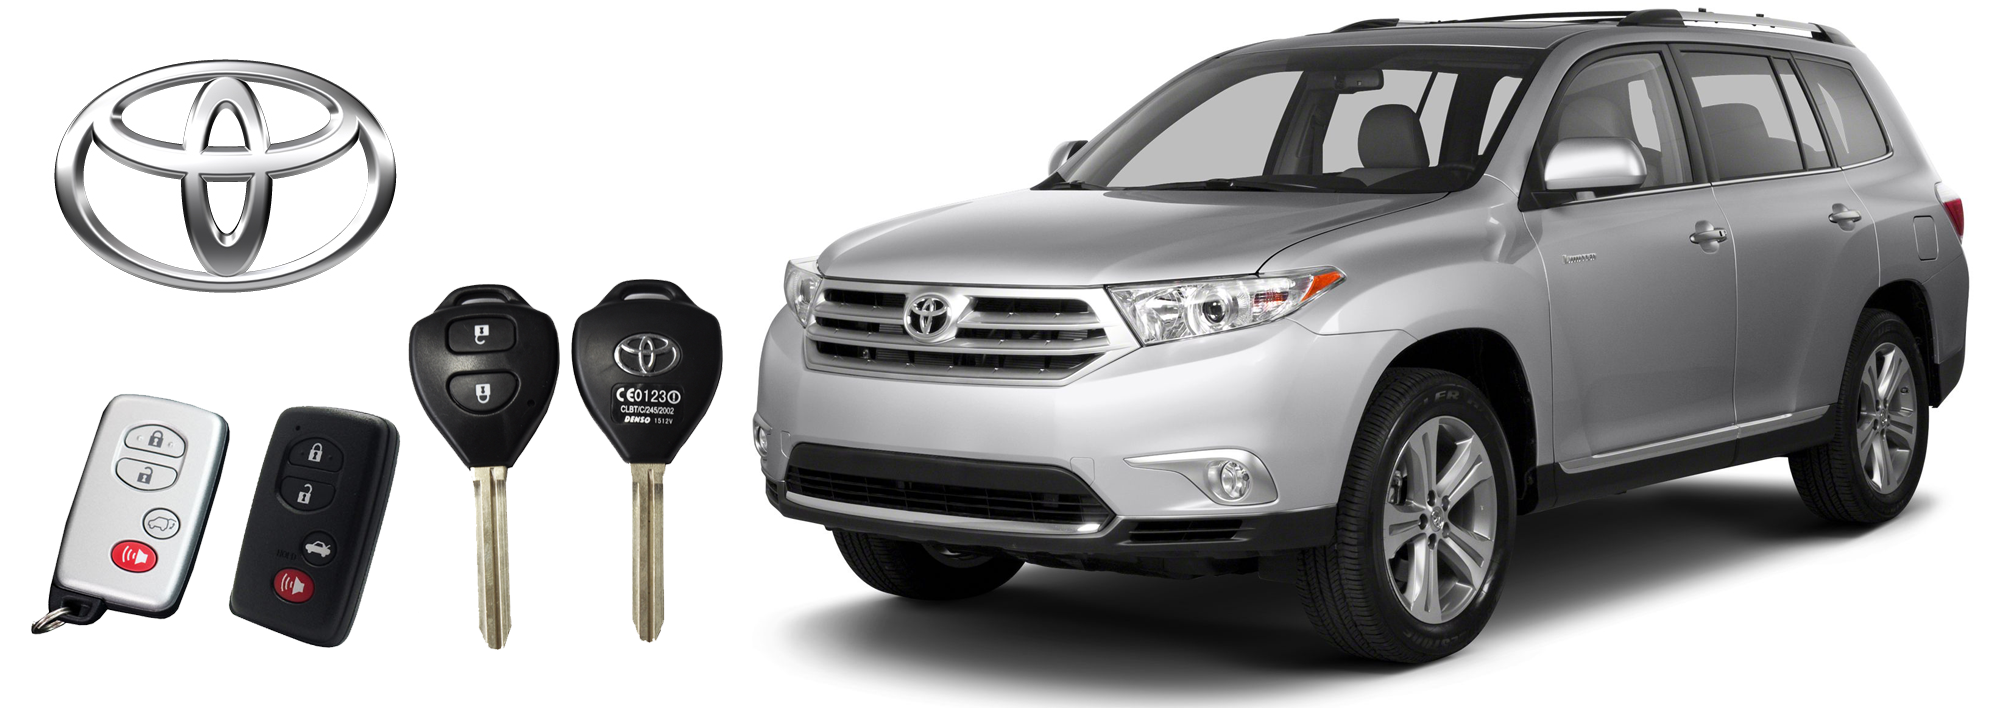 Toyota Car Key Replacement In Westchester County Ny Call 203